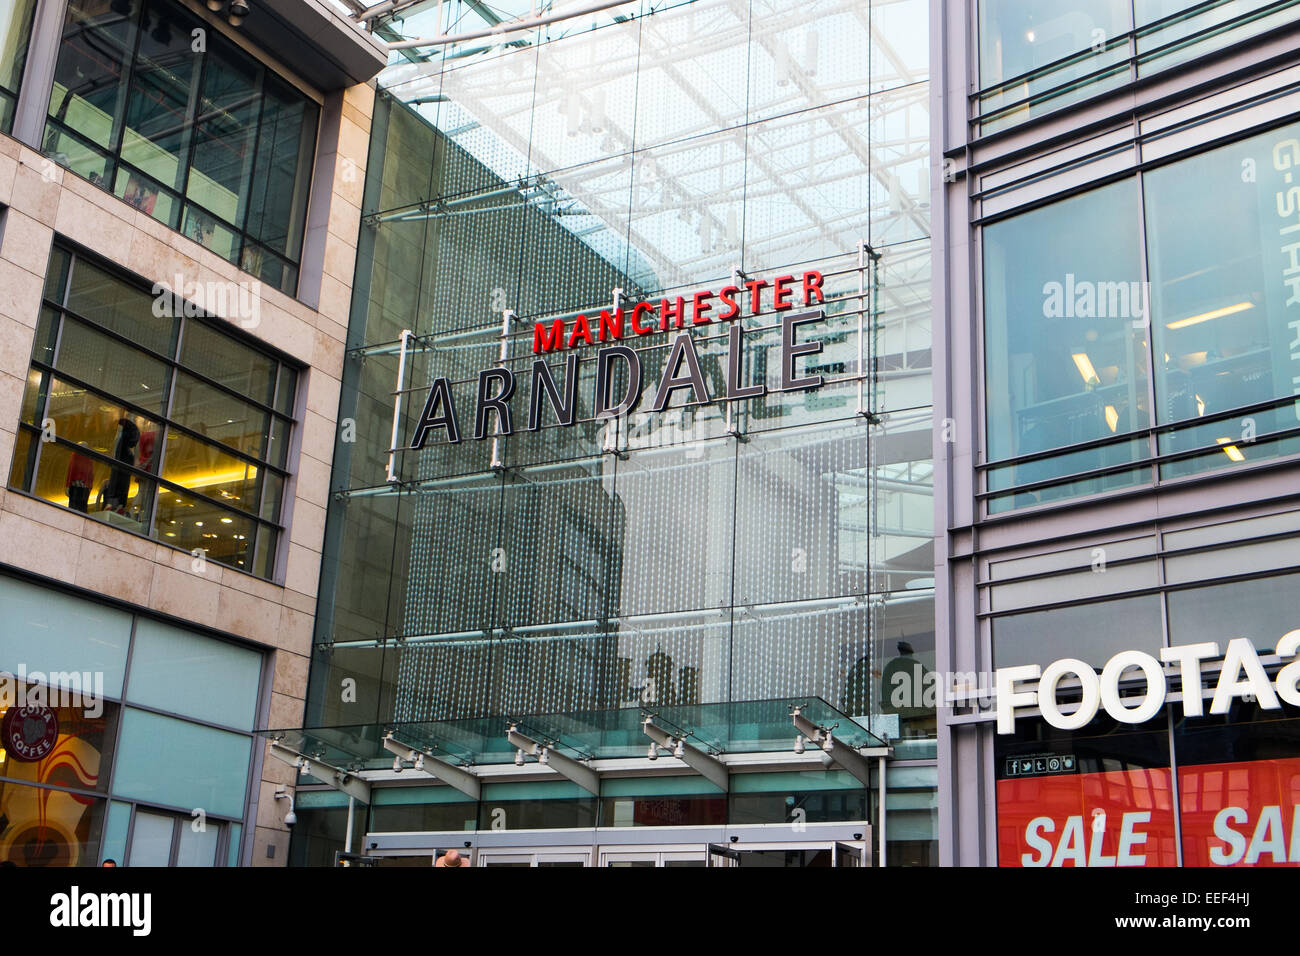 manchester arndale shopping centre in the city centre,manchester,england - Stock Image